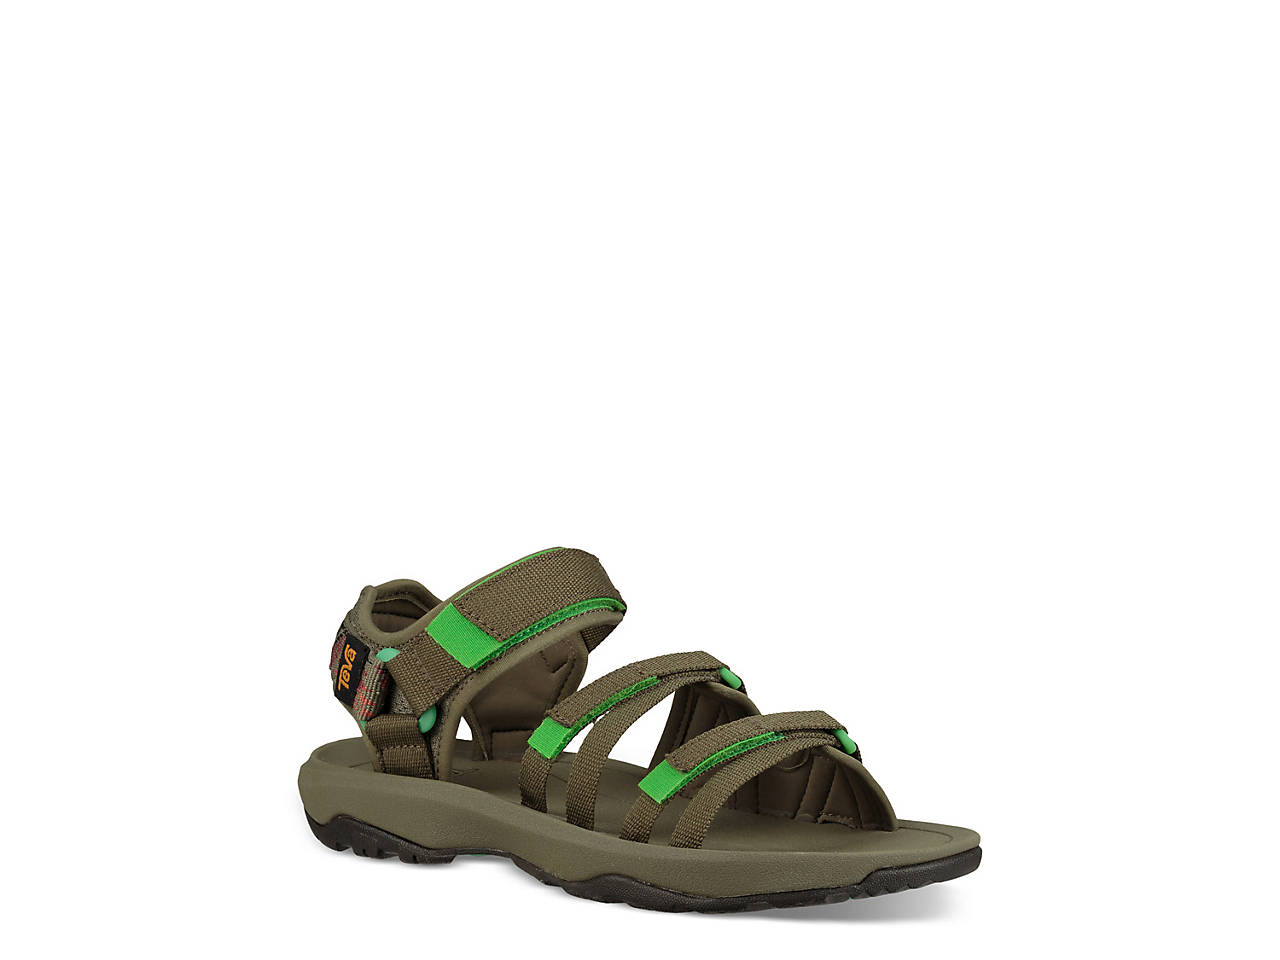 e241f6f97 Teva Hurricane XLT 2 ALP Youth Sandal Kids Shoes